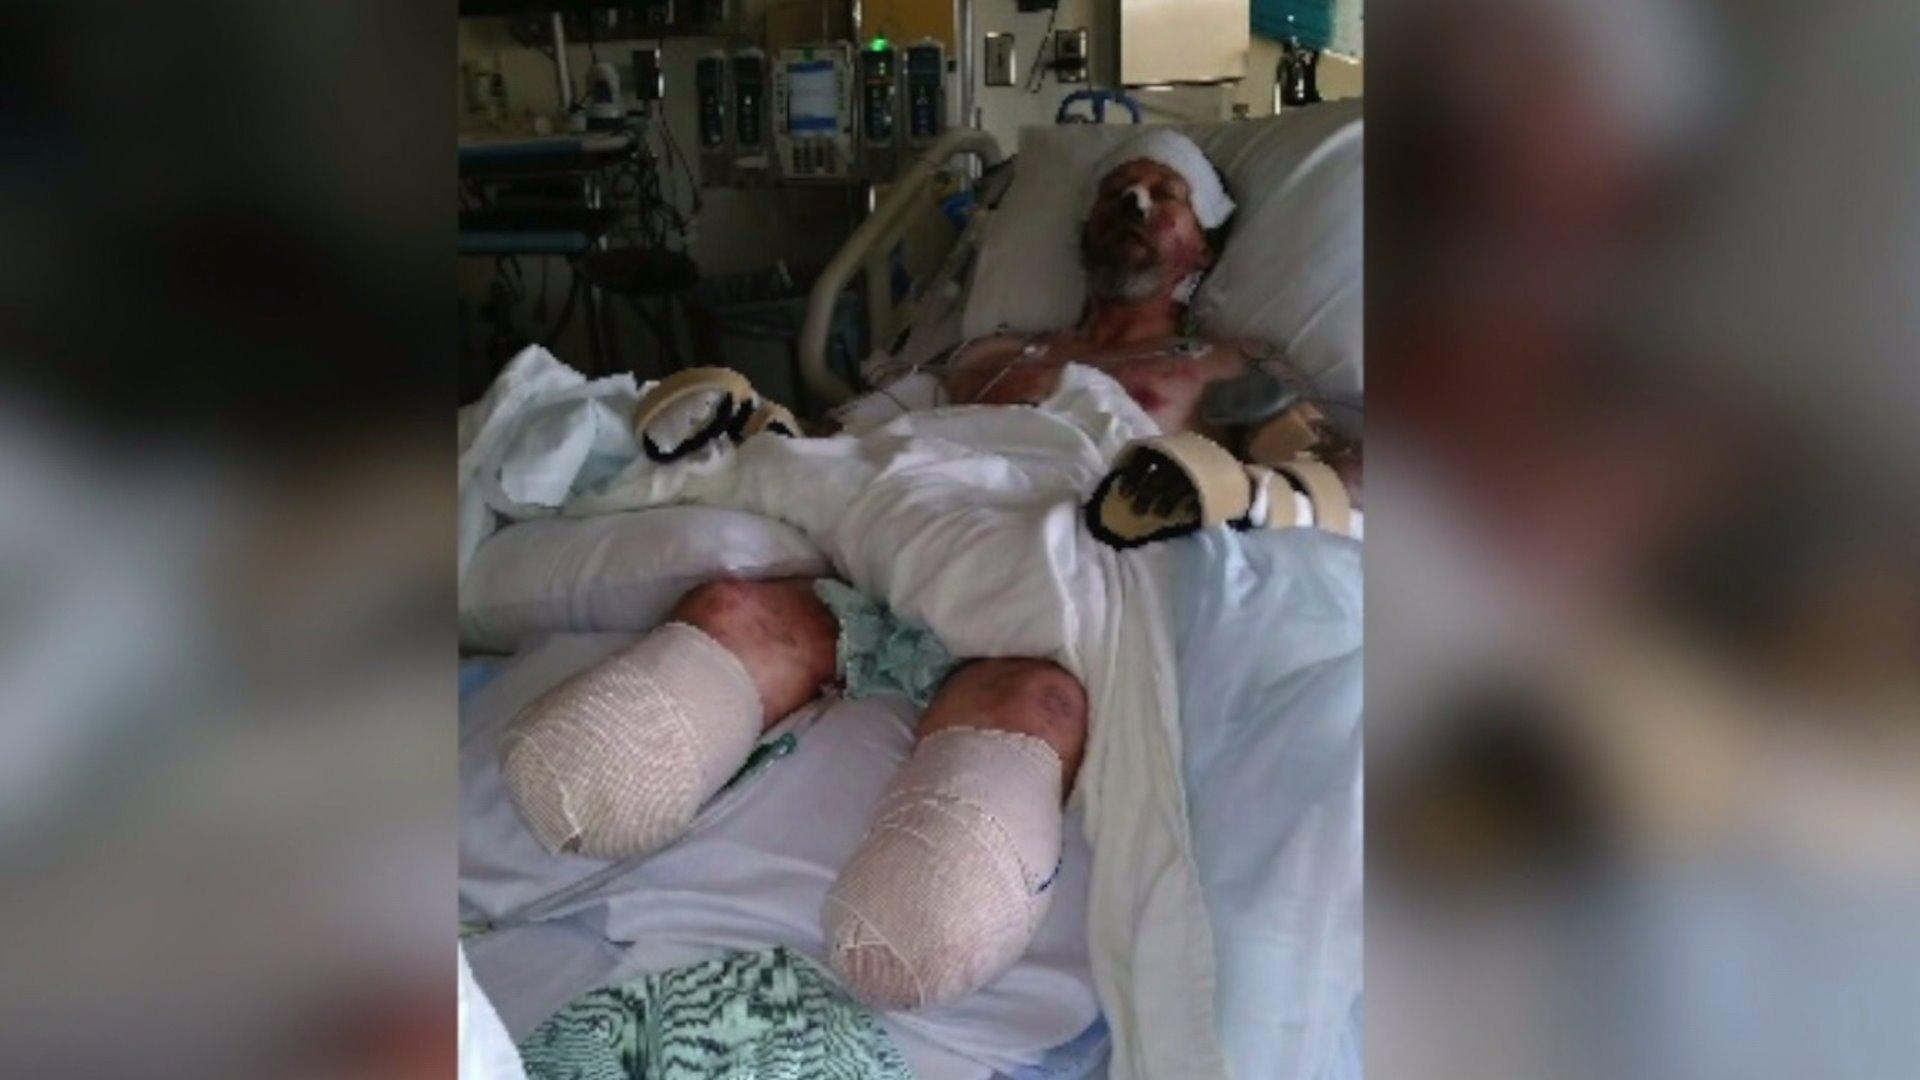 A Wisconsin man was forced to have multiple limbs amputated after he